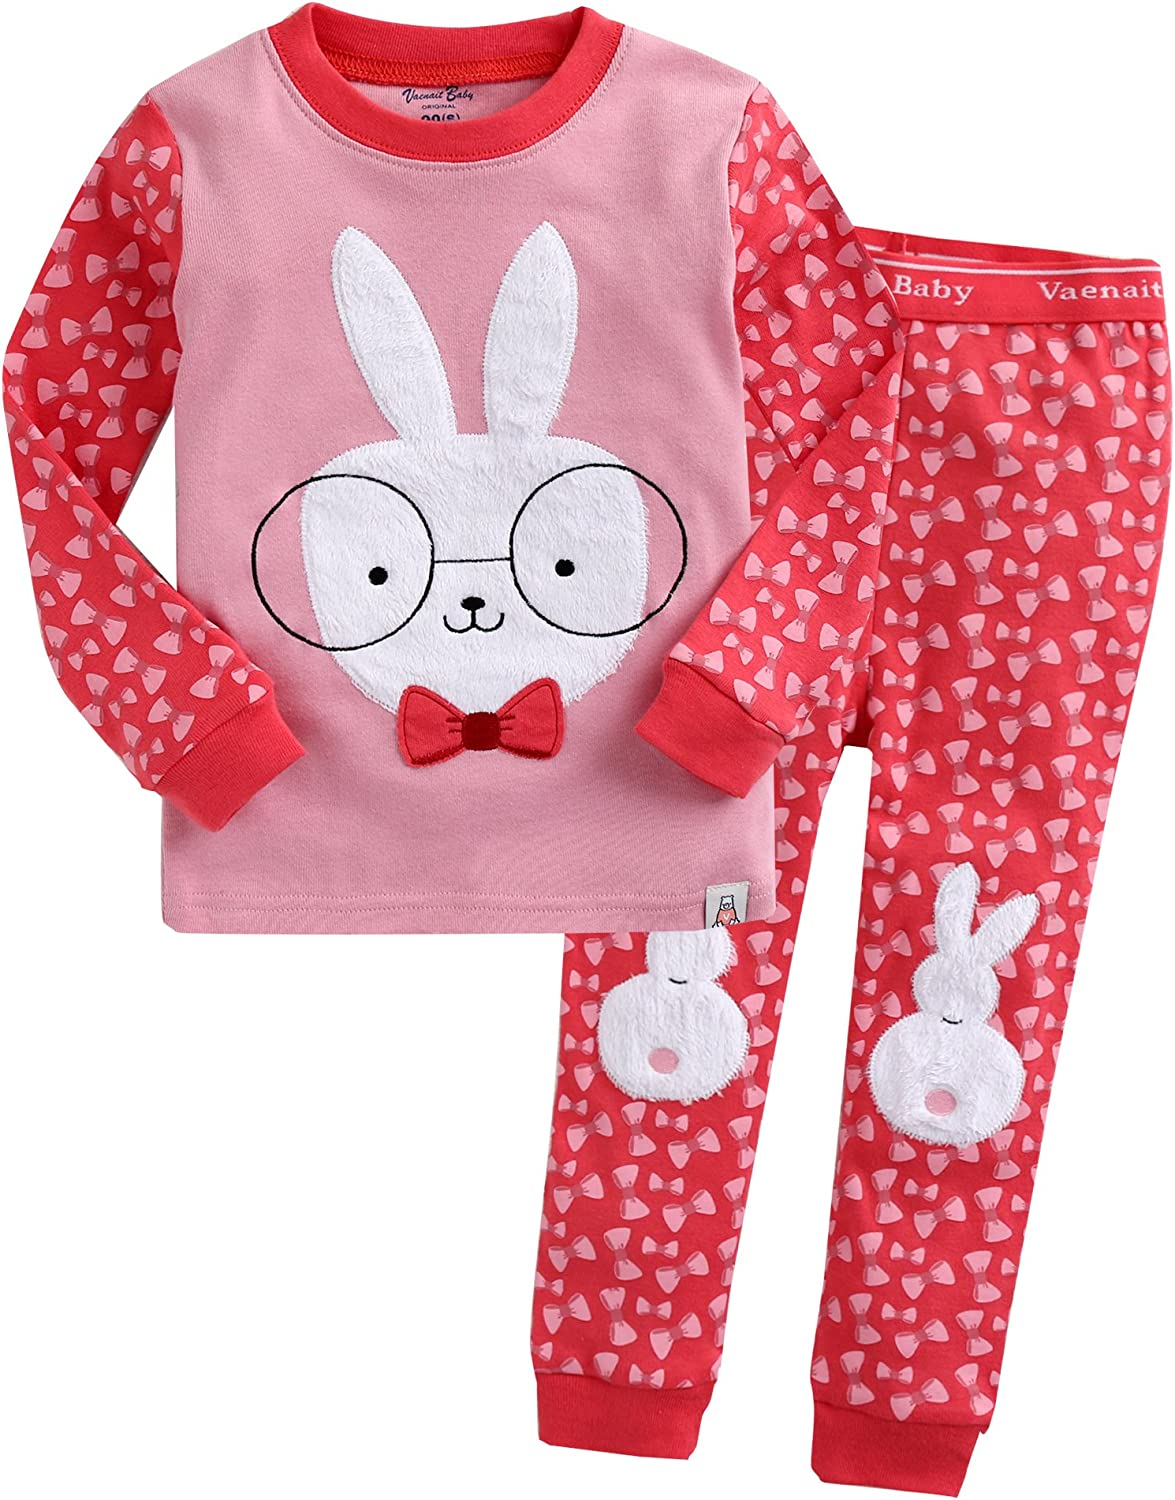 Vaenait Baby 12M-12 Years Girls Boys 100/% Cotton Pyjama Sleepwear Set Flower Gifts Printed Nightwear Pyjamas Night pjs